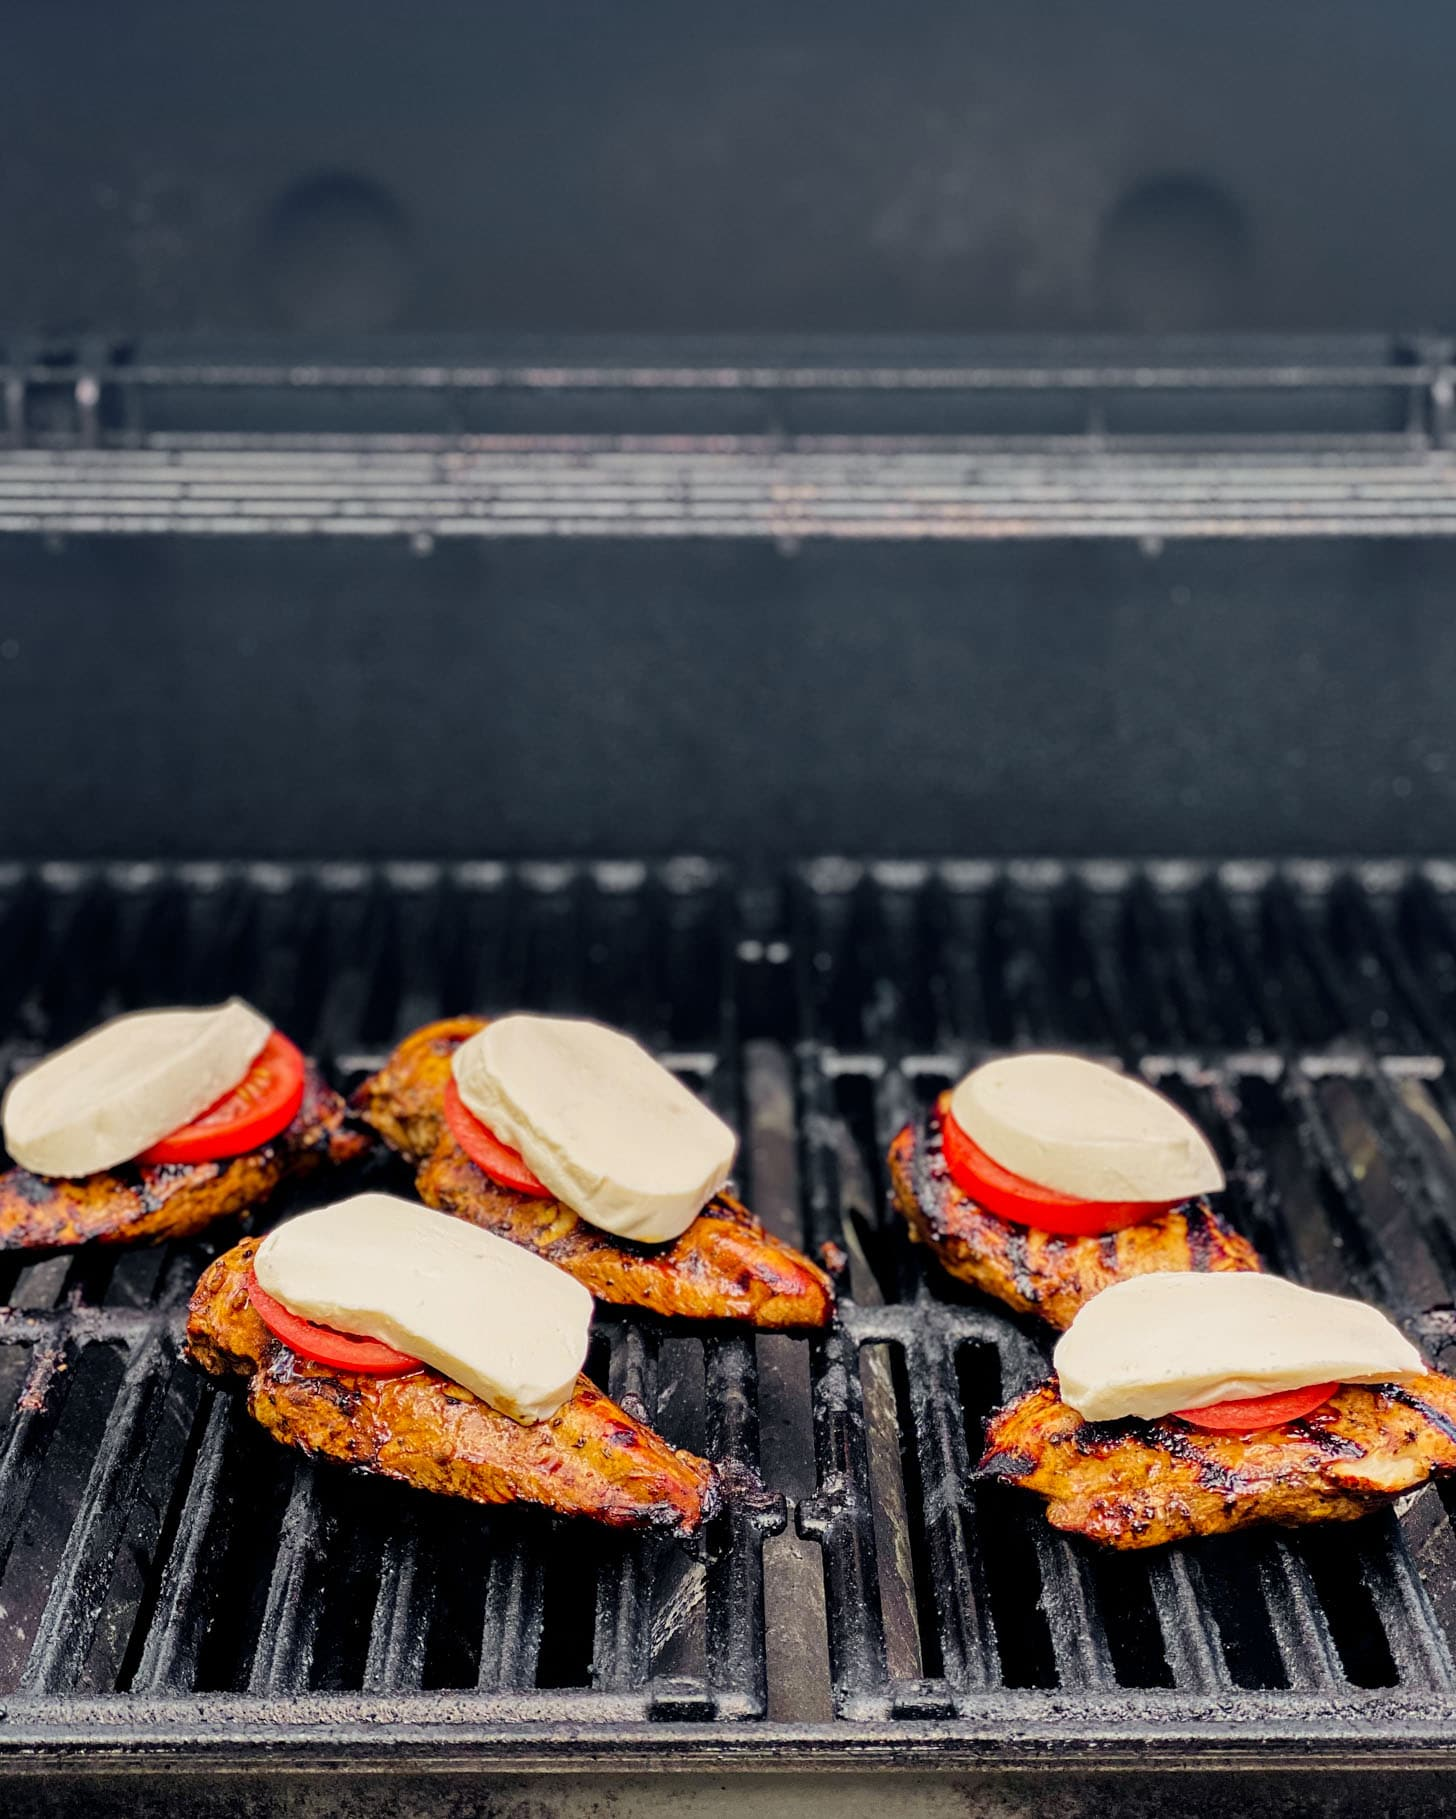 grilling the chicken parmesan